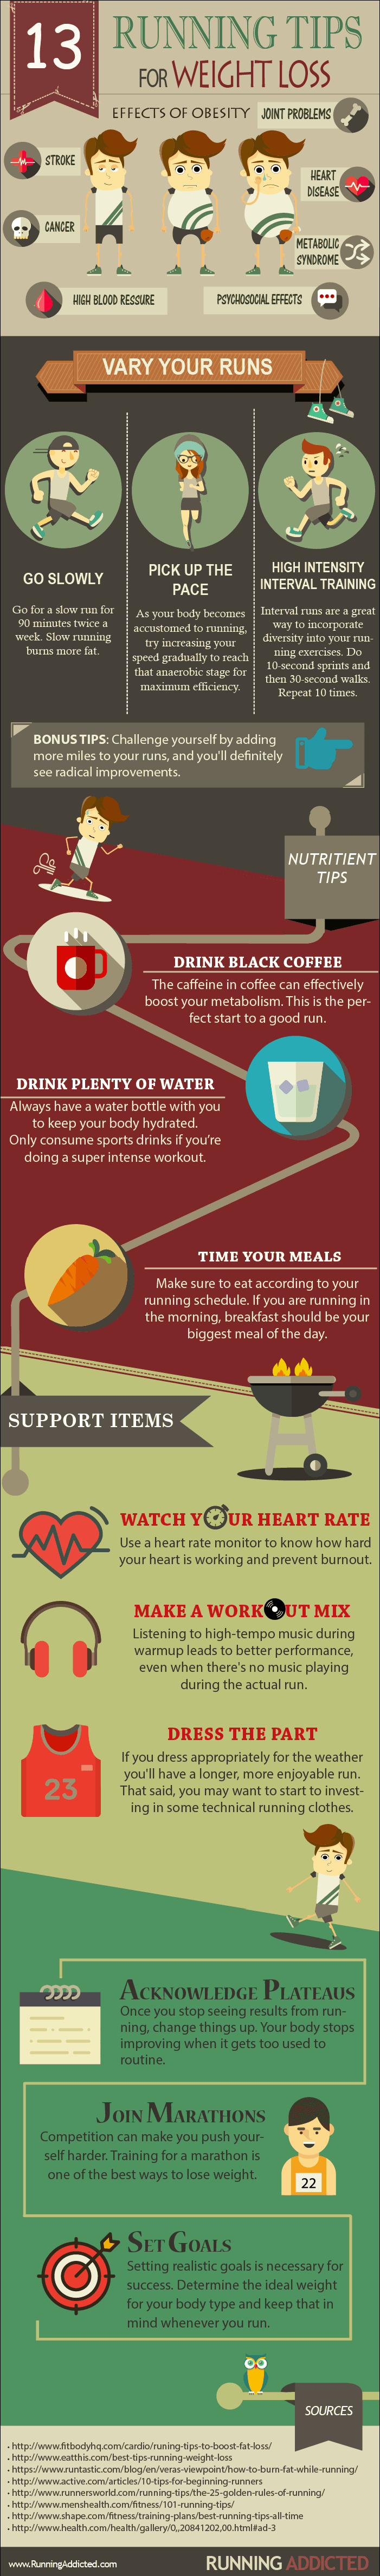 running-tips-for-weight-loss-infographic